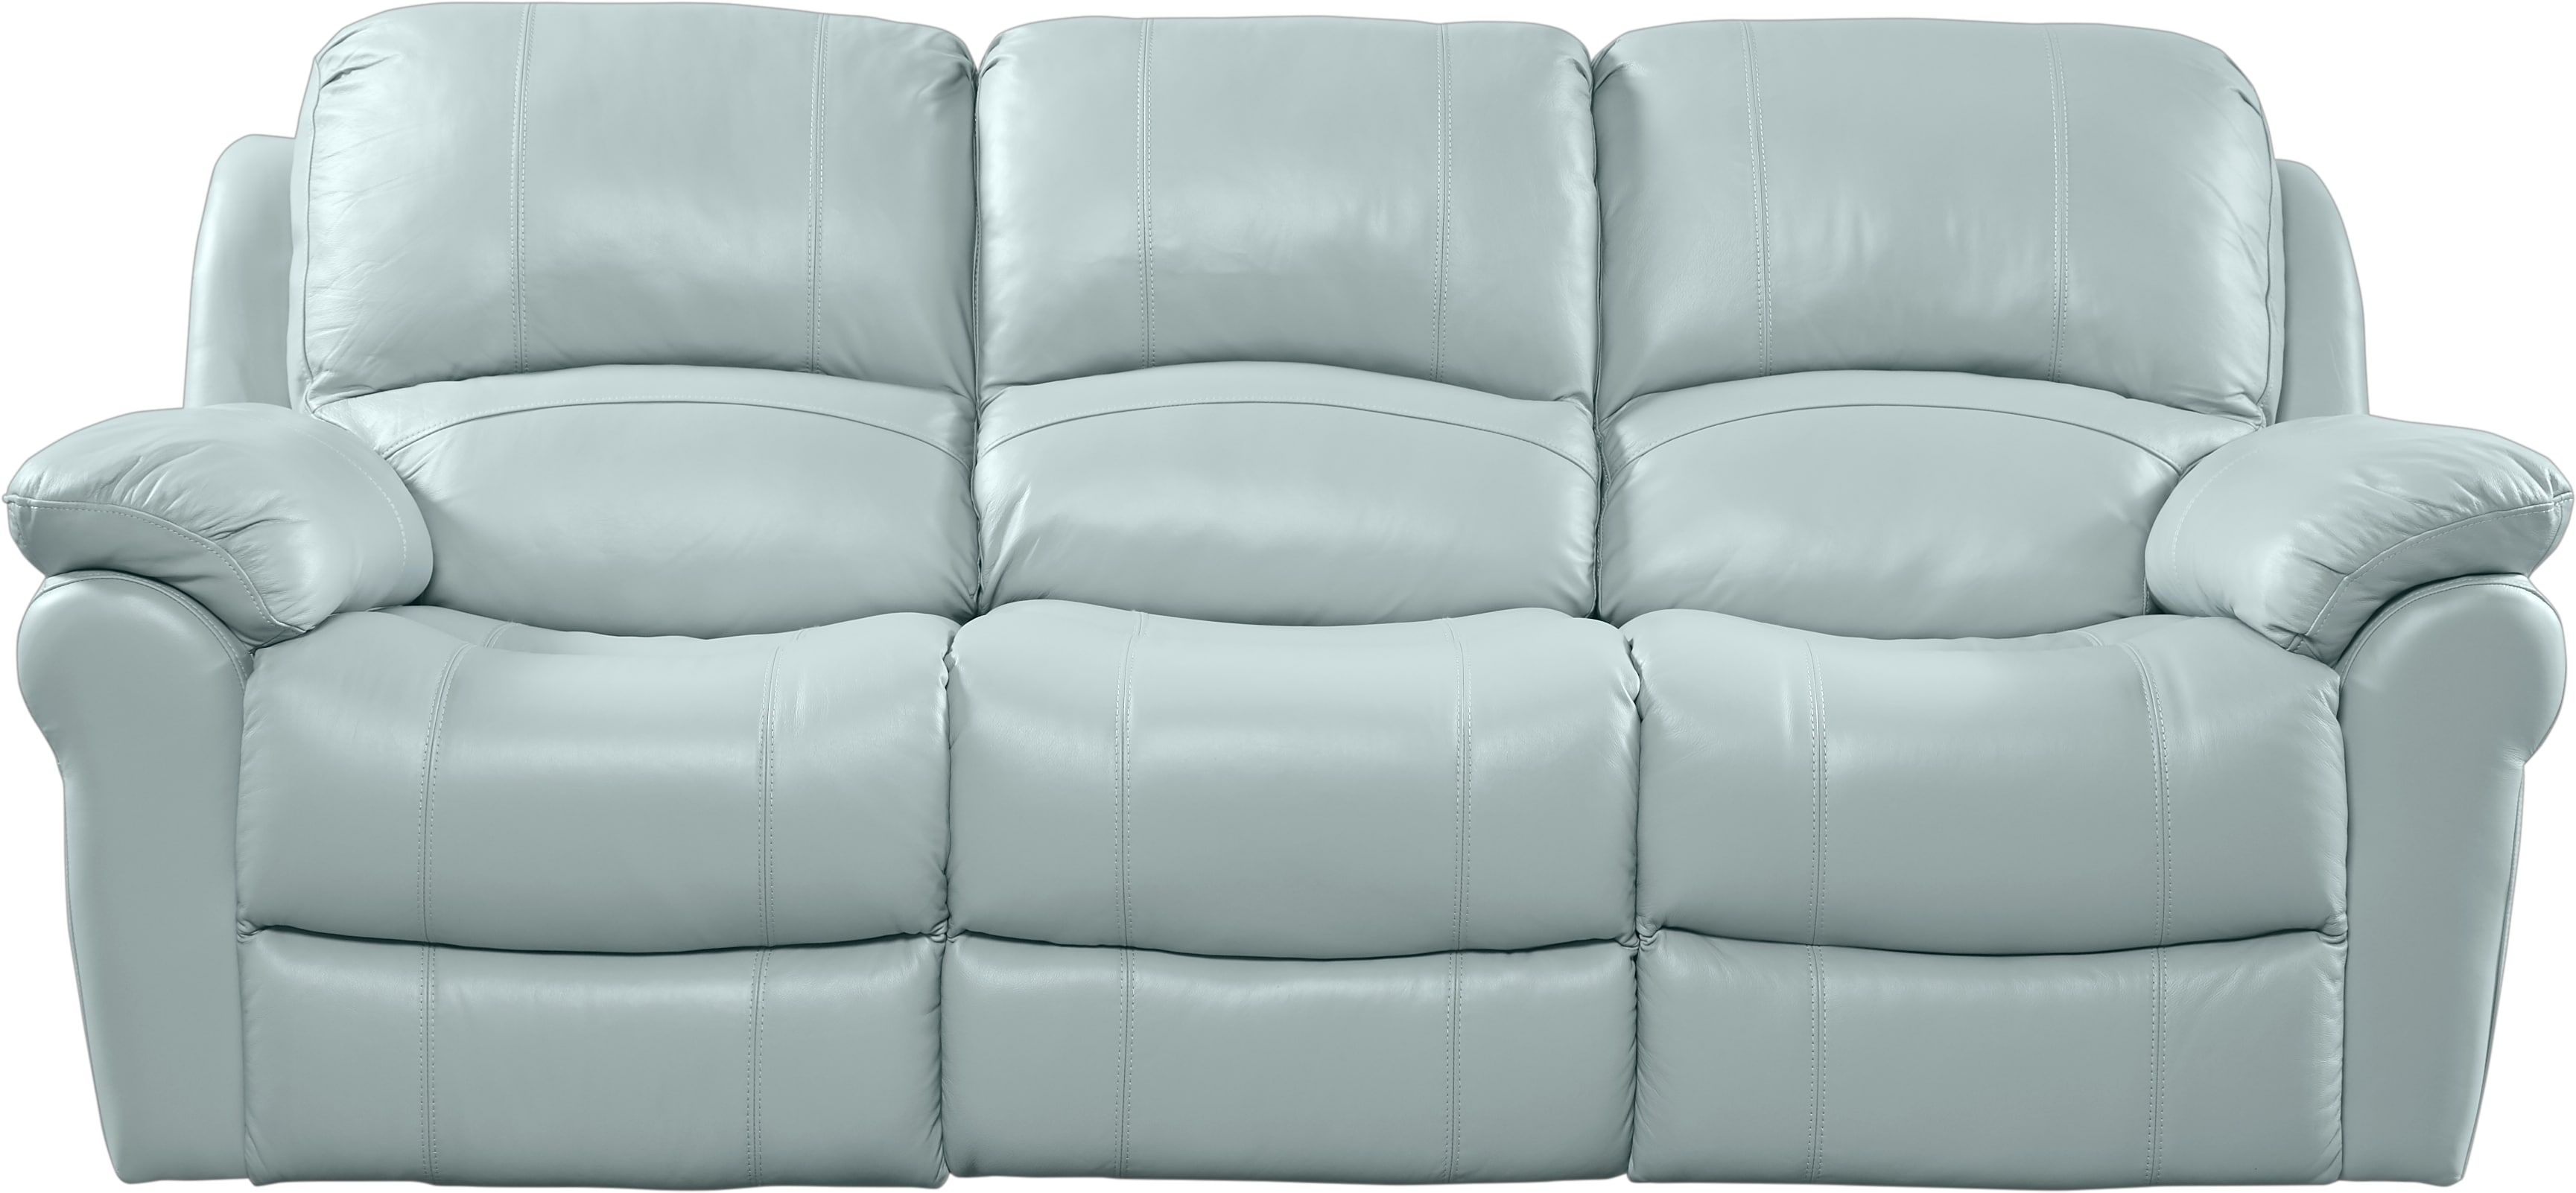 Best 10 Incredible Ideas How To Improve Reclining Sofa Slip 400 x 300